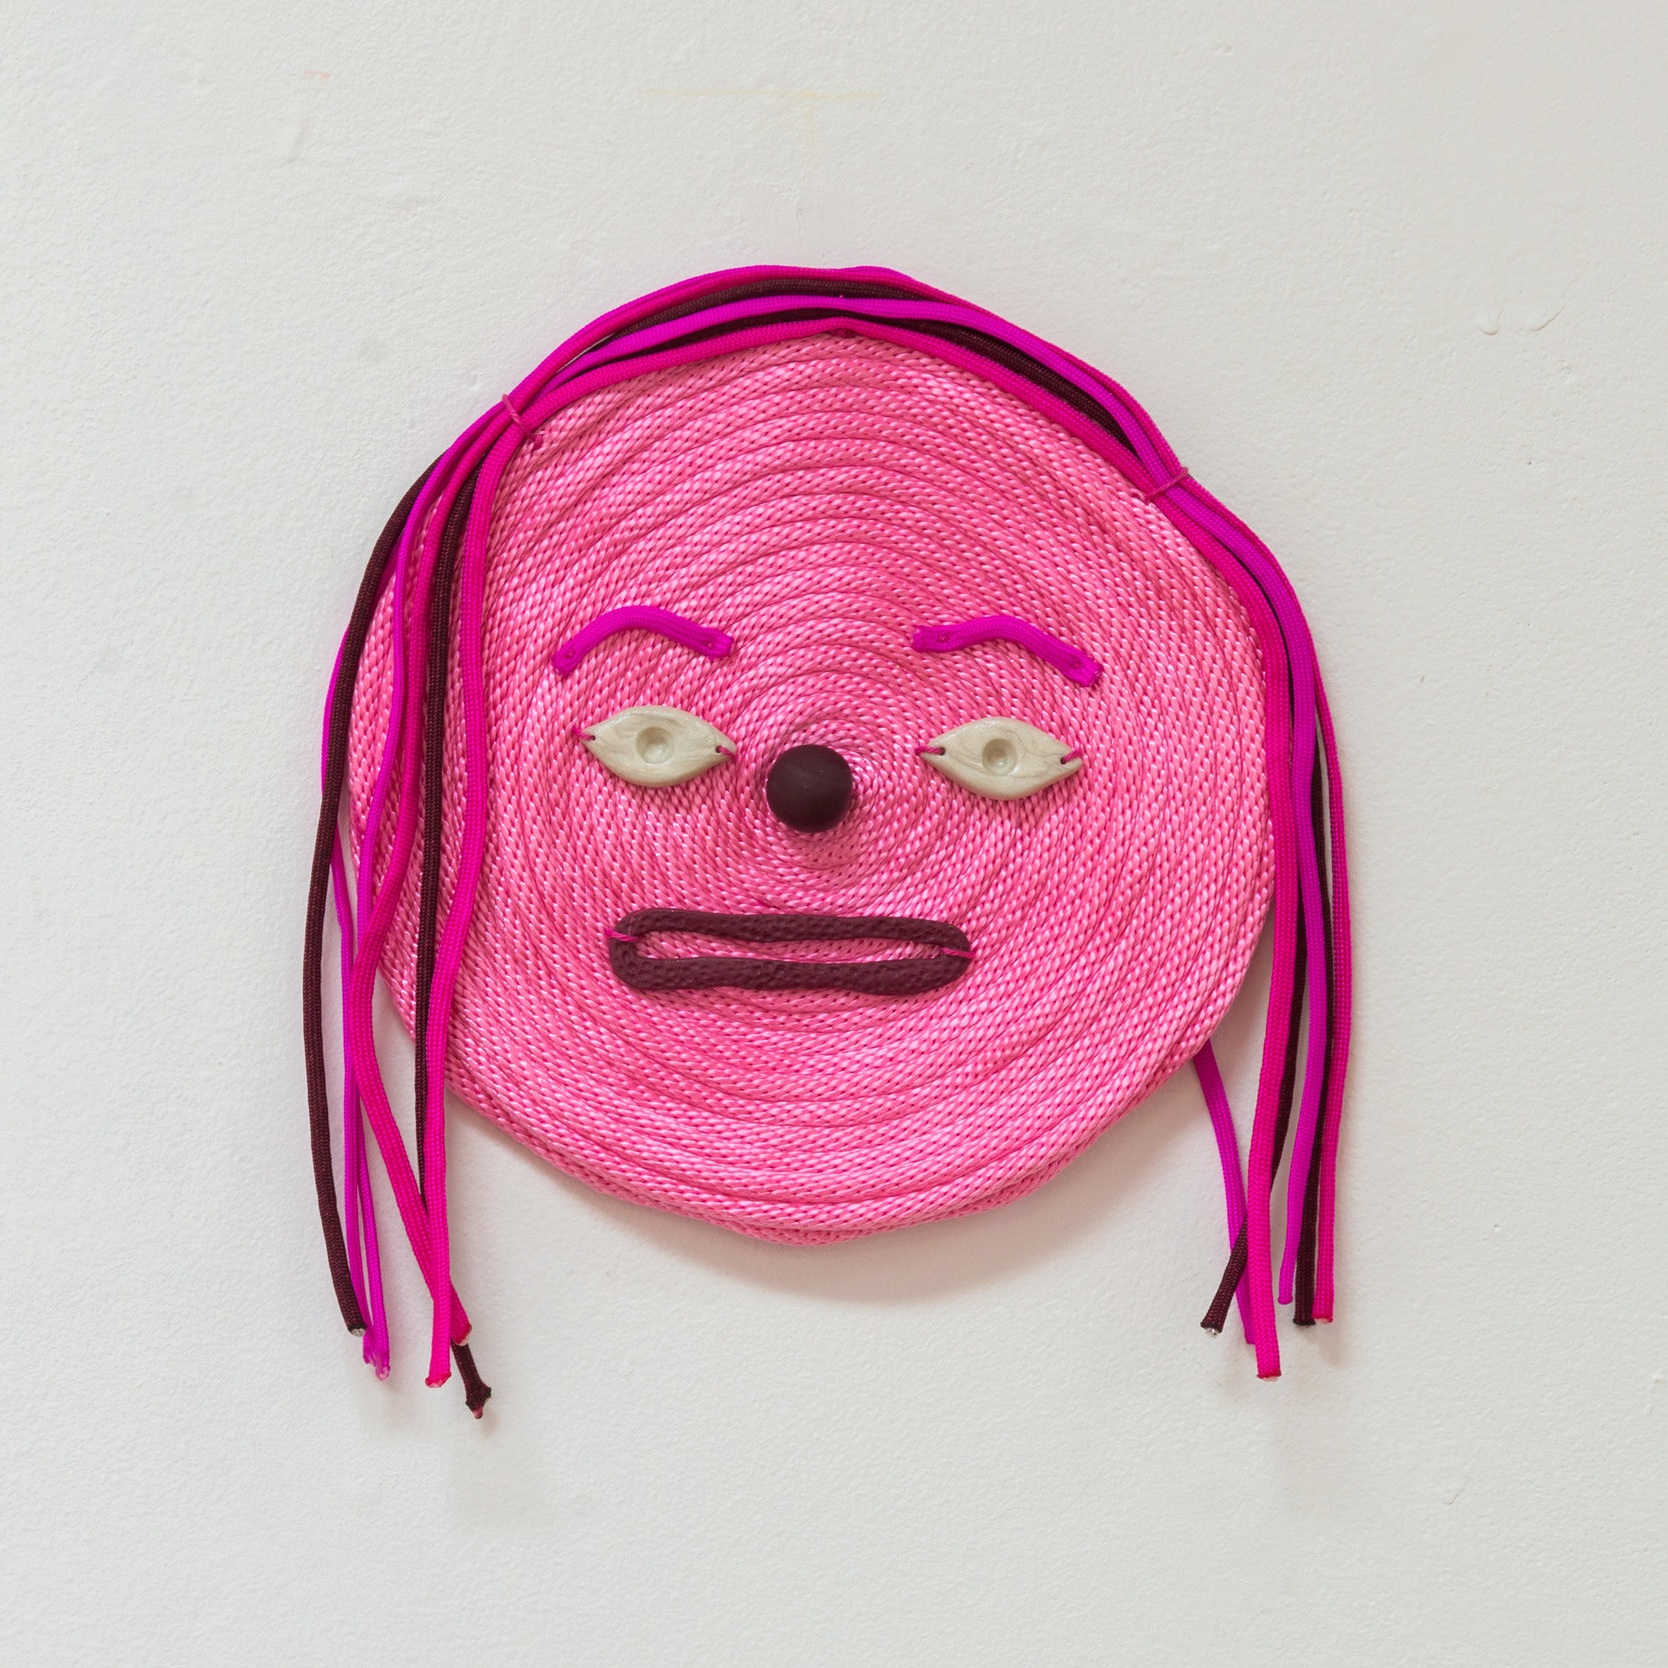 Ruby (haunted by) , 2019 Bondage rope, paracord, polymer clay.